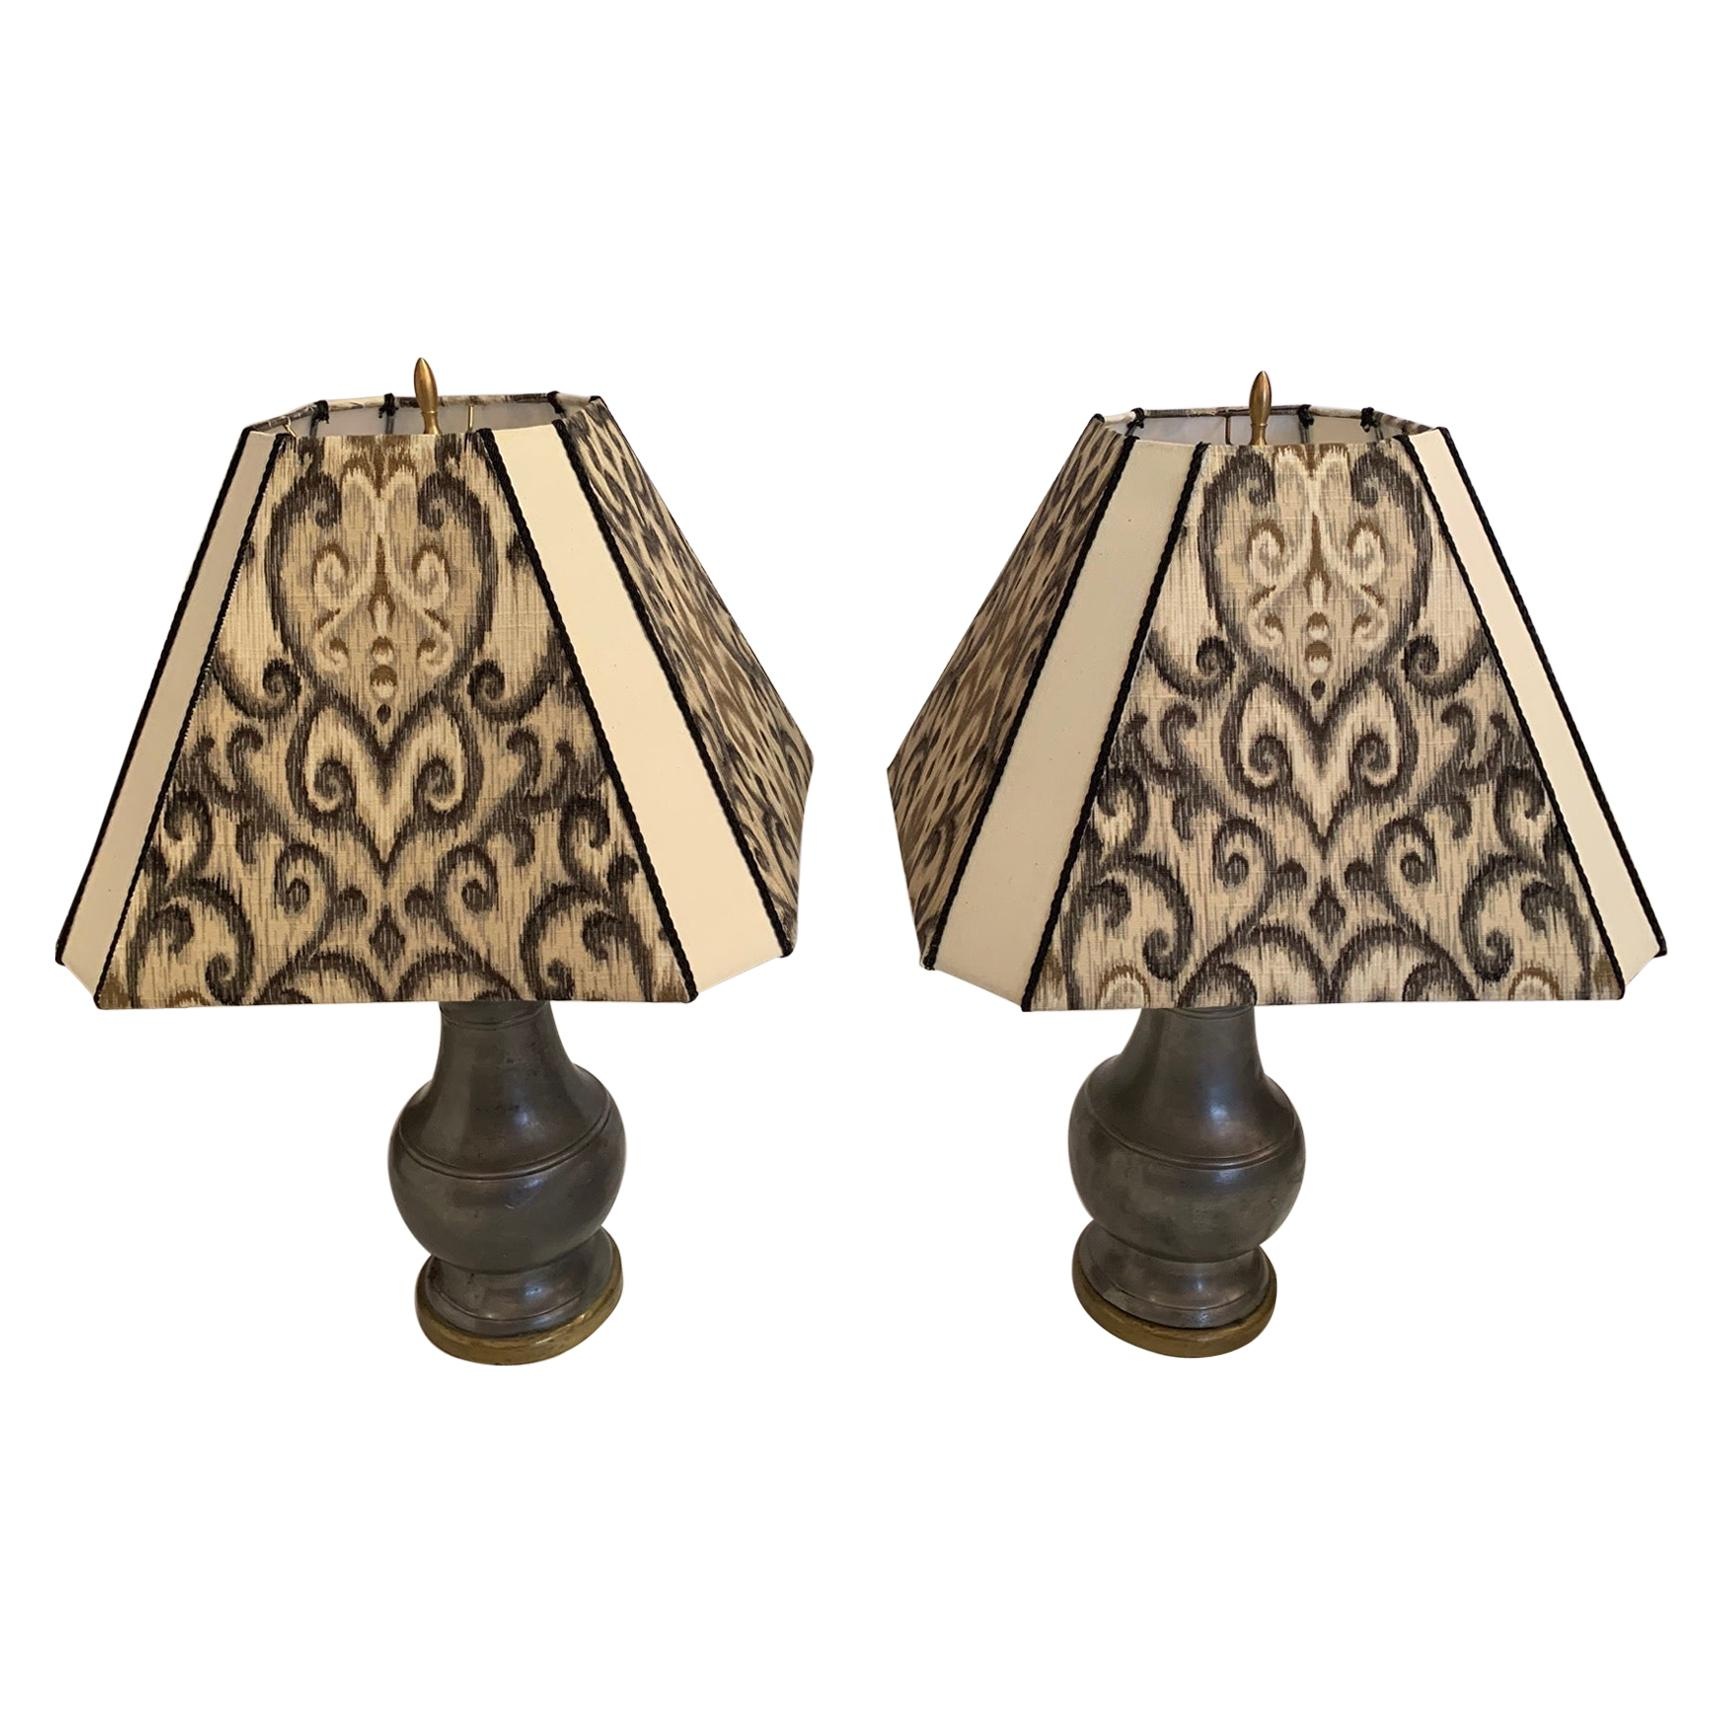 Pair of Handsome Pewter and Brass Table Lamps with Custom Shades